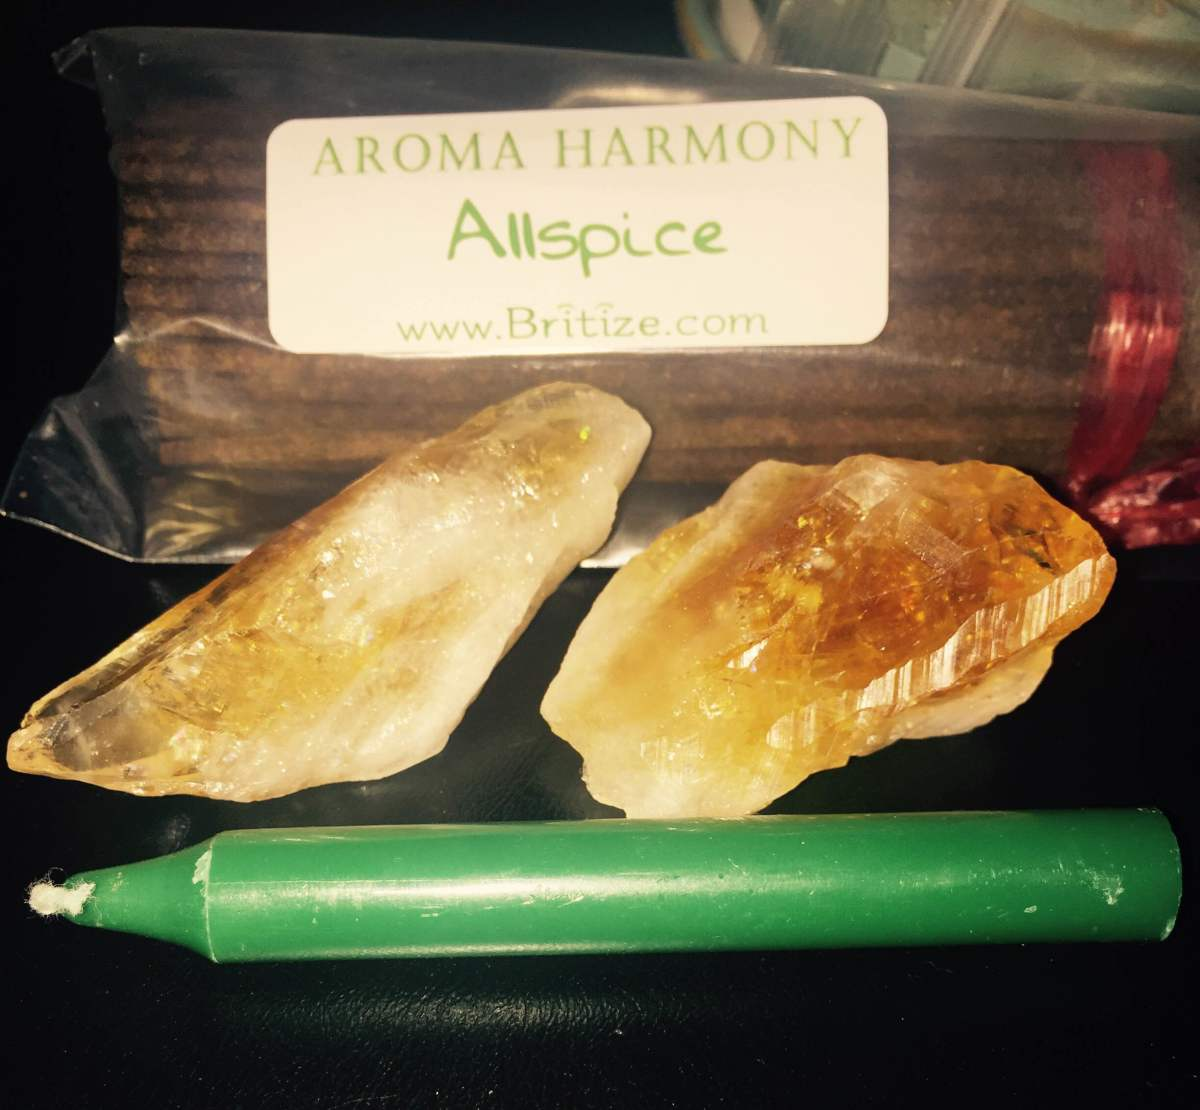 Raw citrine crystals, green candle and Allspice Incense.